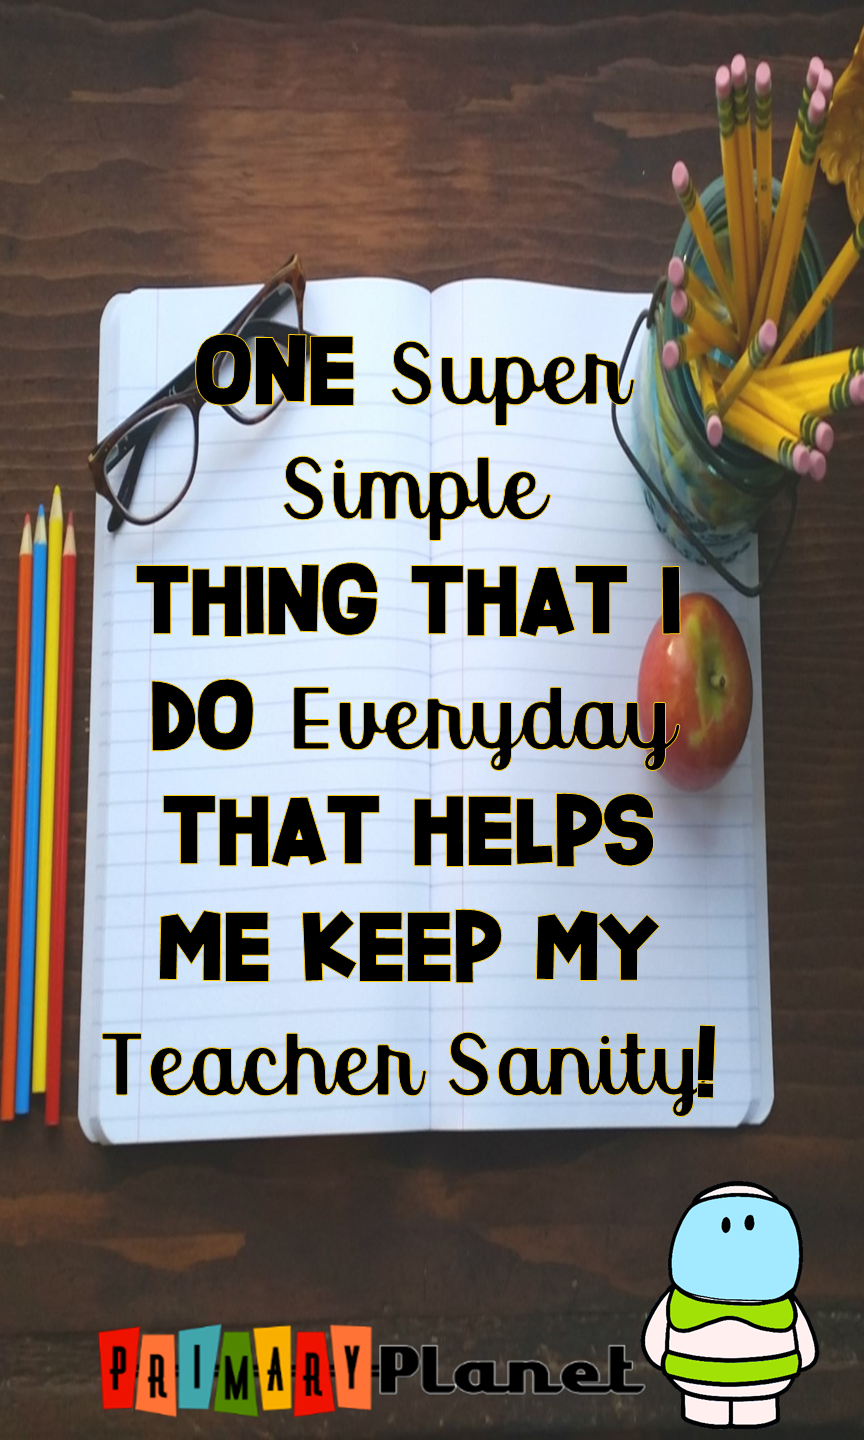 Teacher Tip: One SUPER SIMPLE thing that I do everyday to help my teacher sanity! #teacher #teacherlife #primaryplanet #teachertip